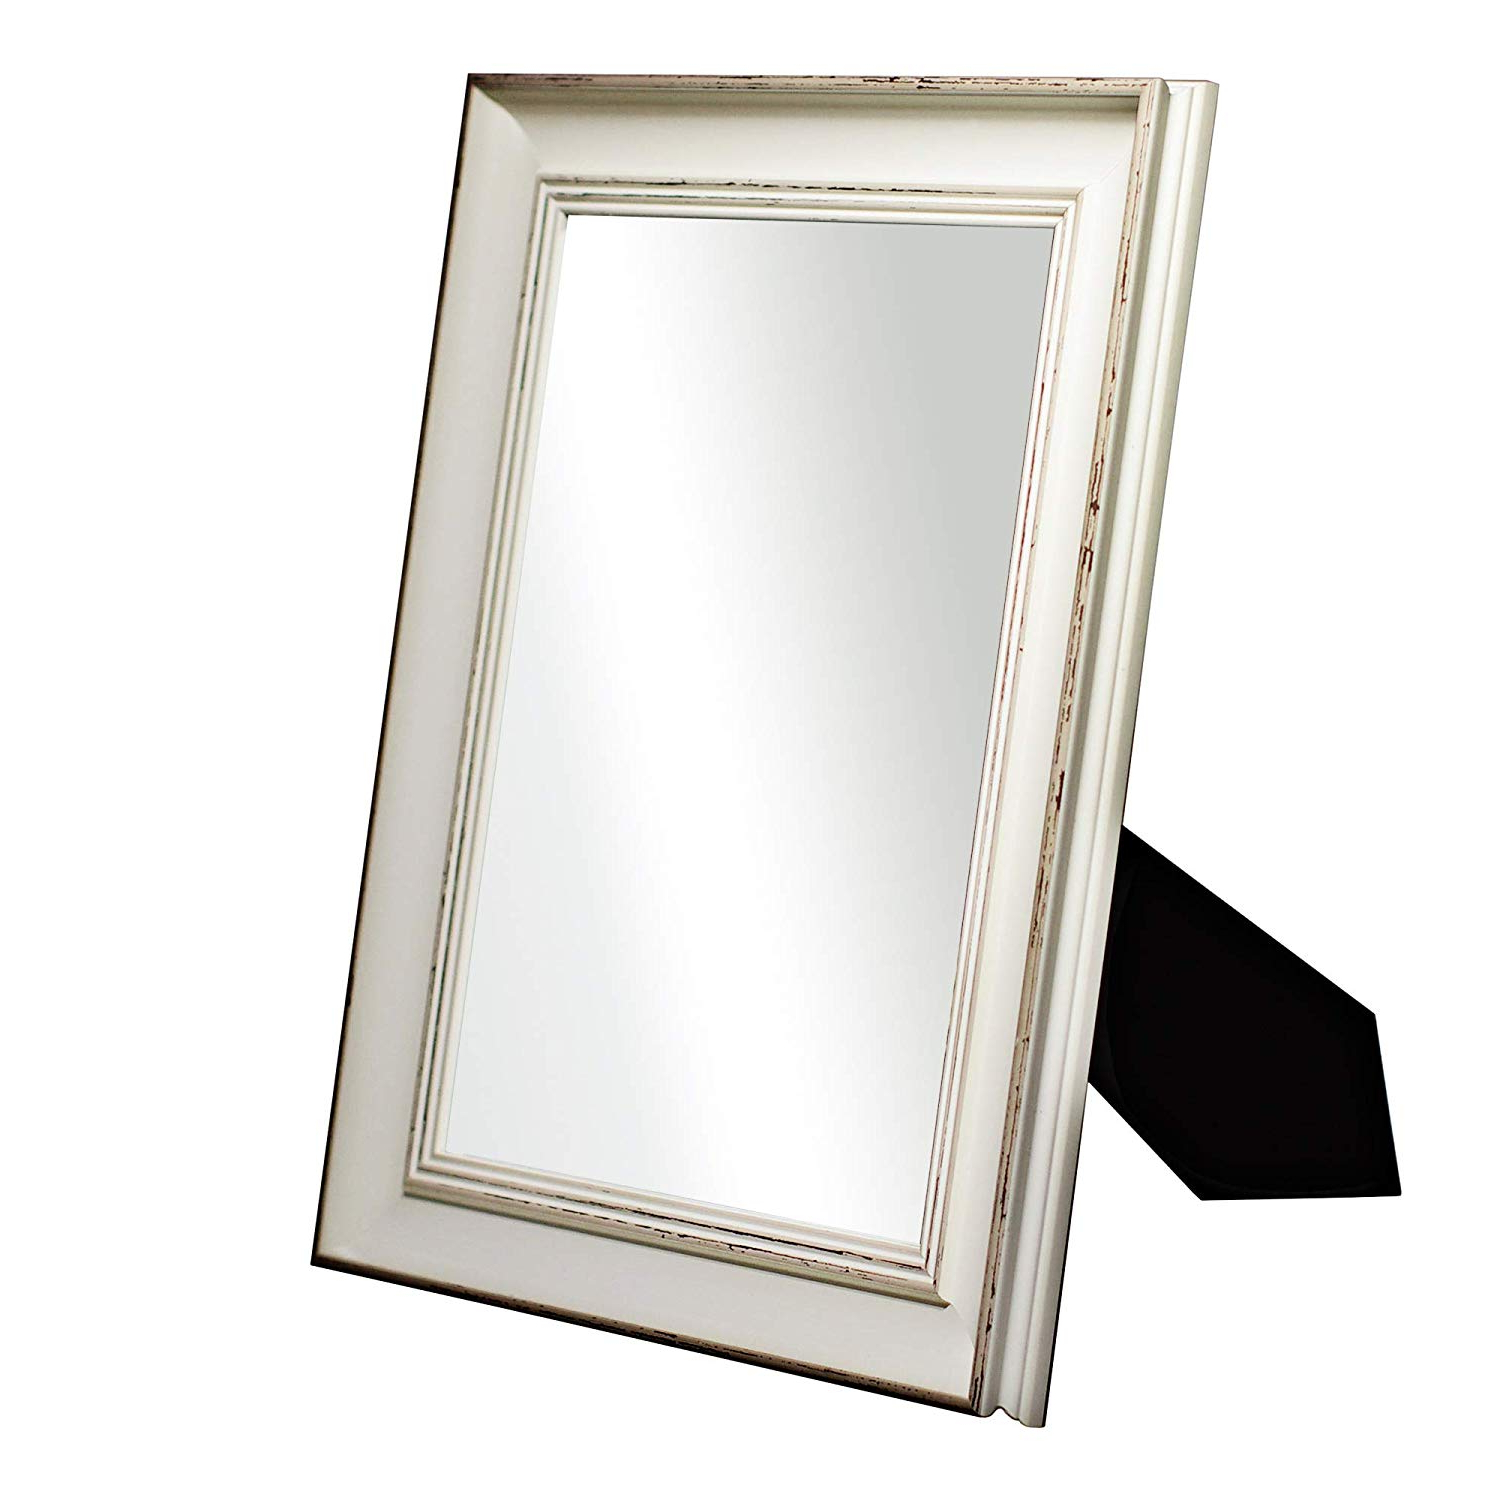 """Popular Girls Wall Mirrors With Mirroir Trend 15"""" X 12"""" Vanity Mirror For Wall And Rectangle Tabletop Wall For Bathroom Women And Girls Makeup Mirror Decorative Wall Mirrors (white (View 11 of 20)"""